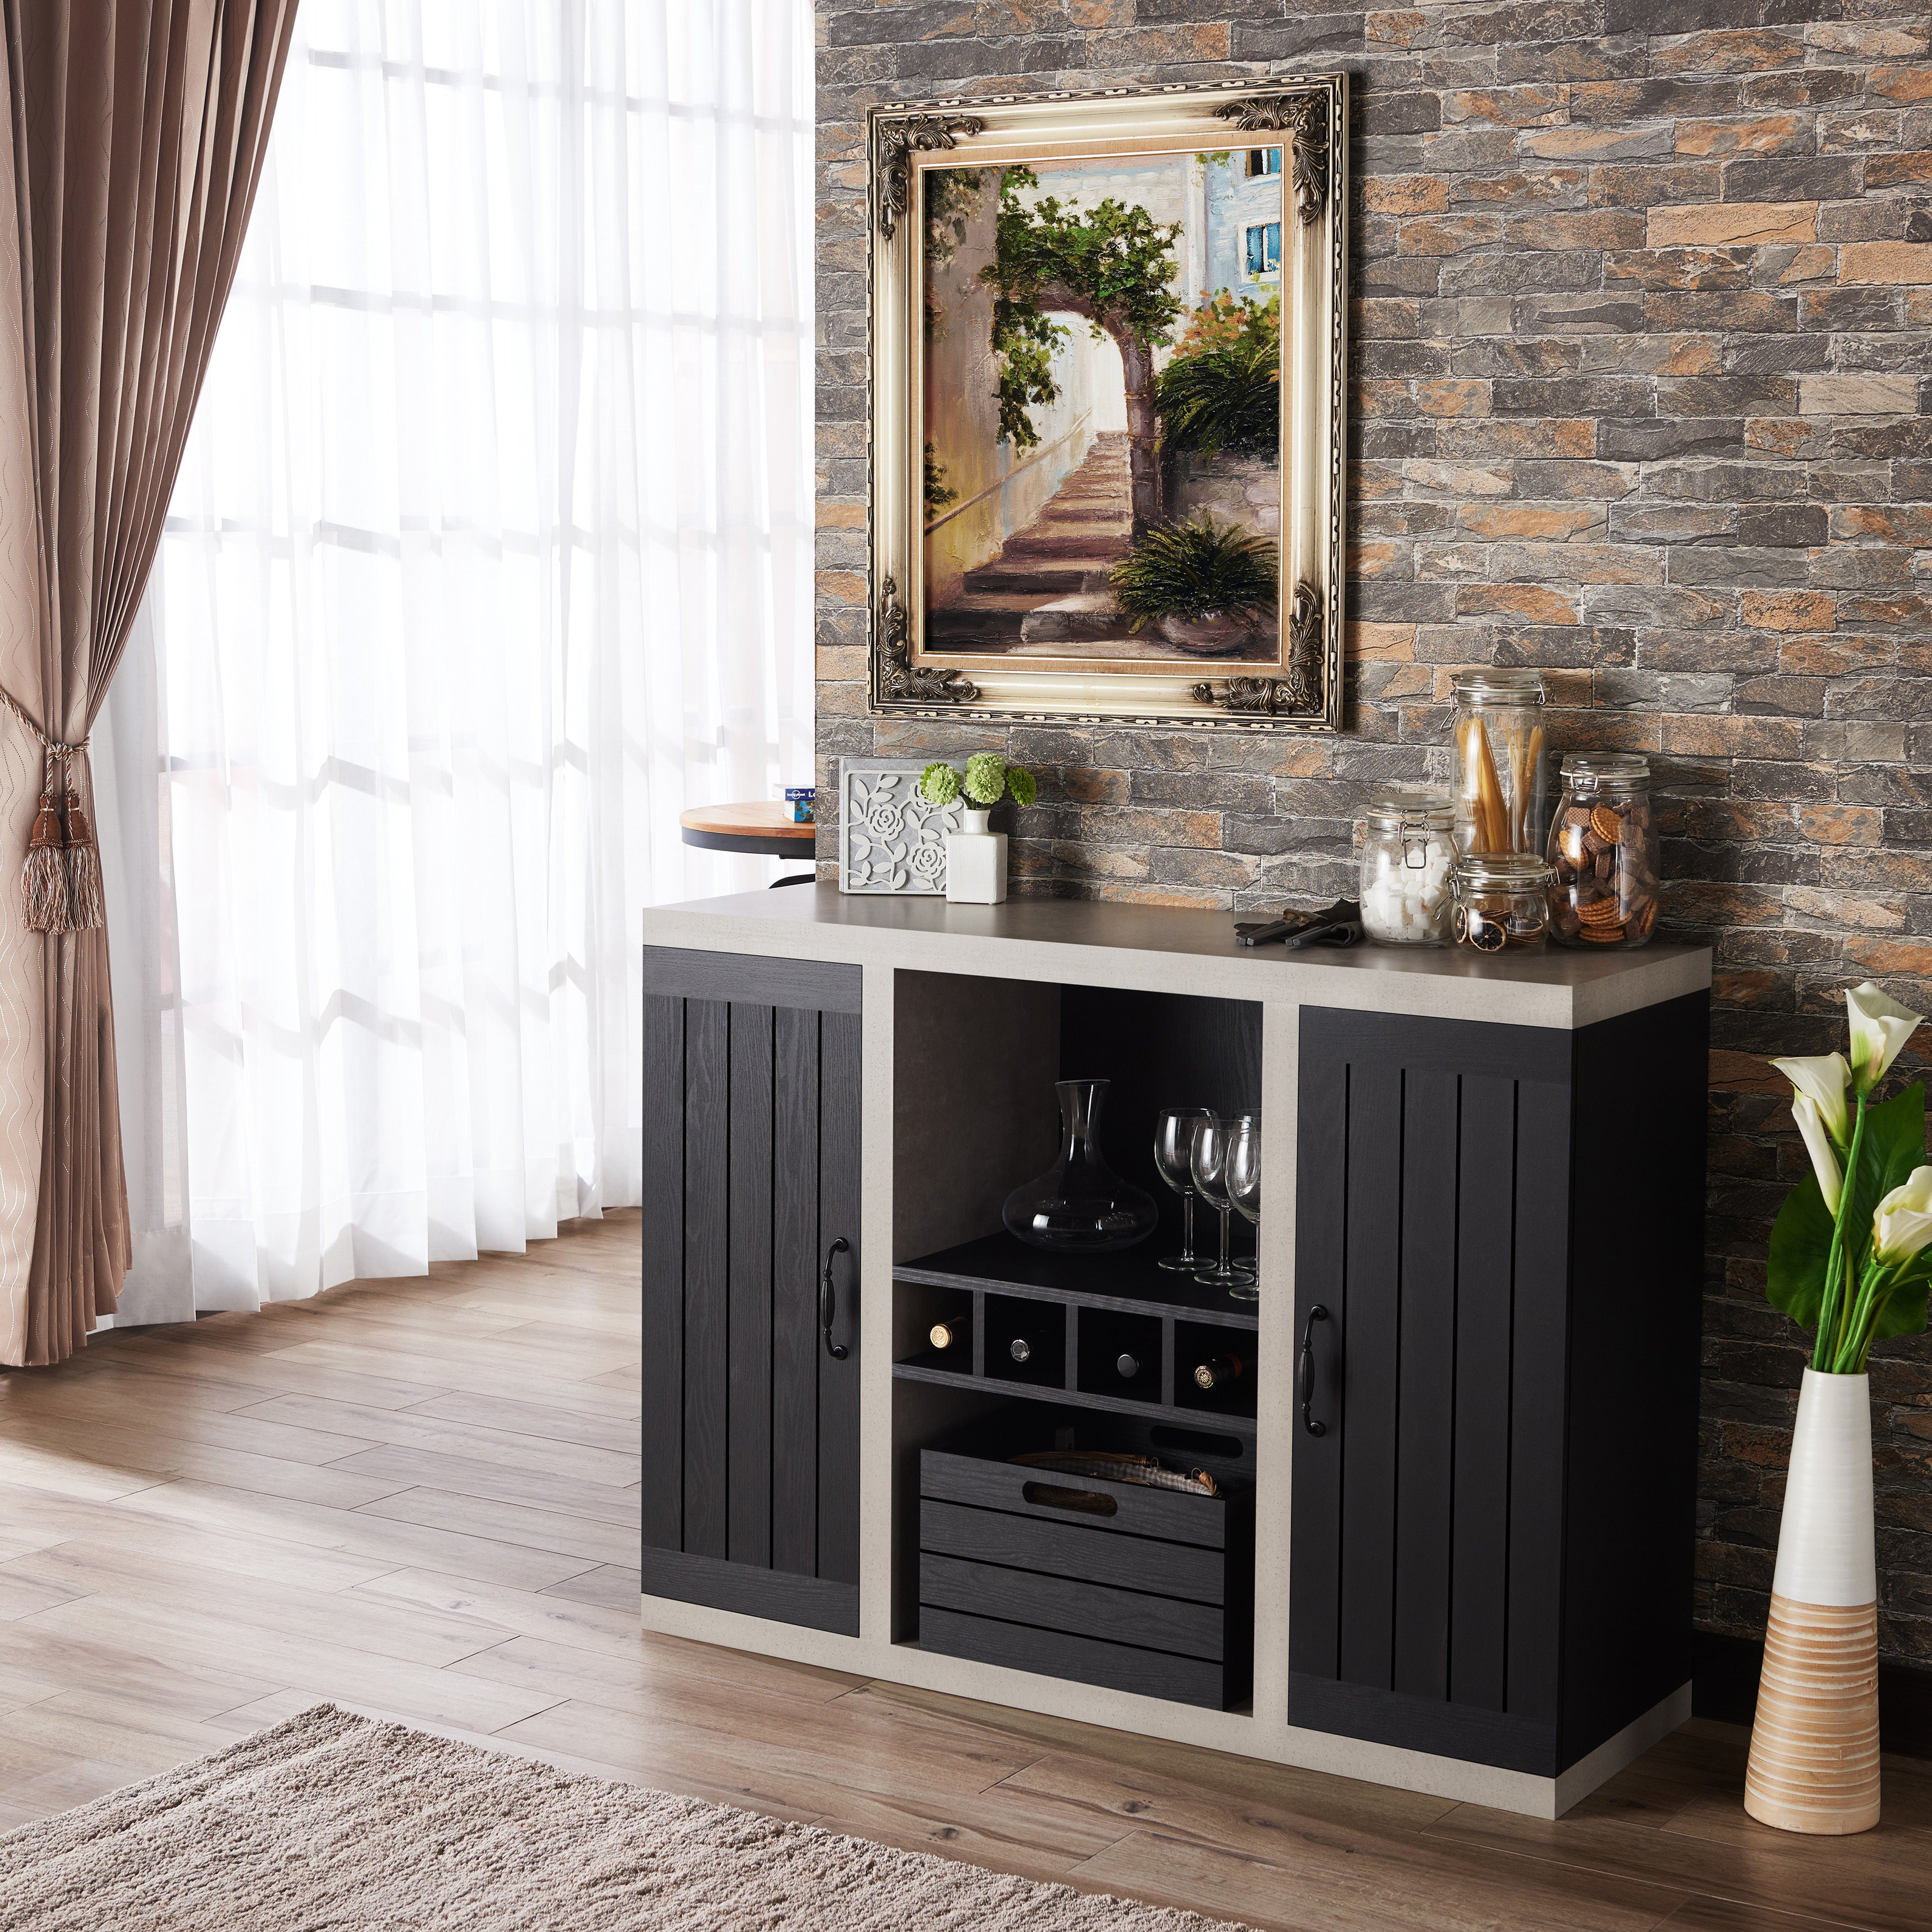 Furniture Of America Chelsean Industrial Cement-Like Buffet Sideboard in Industrial Cement-Like Buffets (Image 5 of 30)